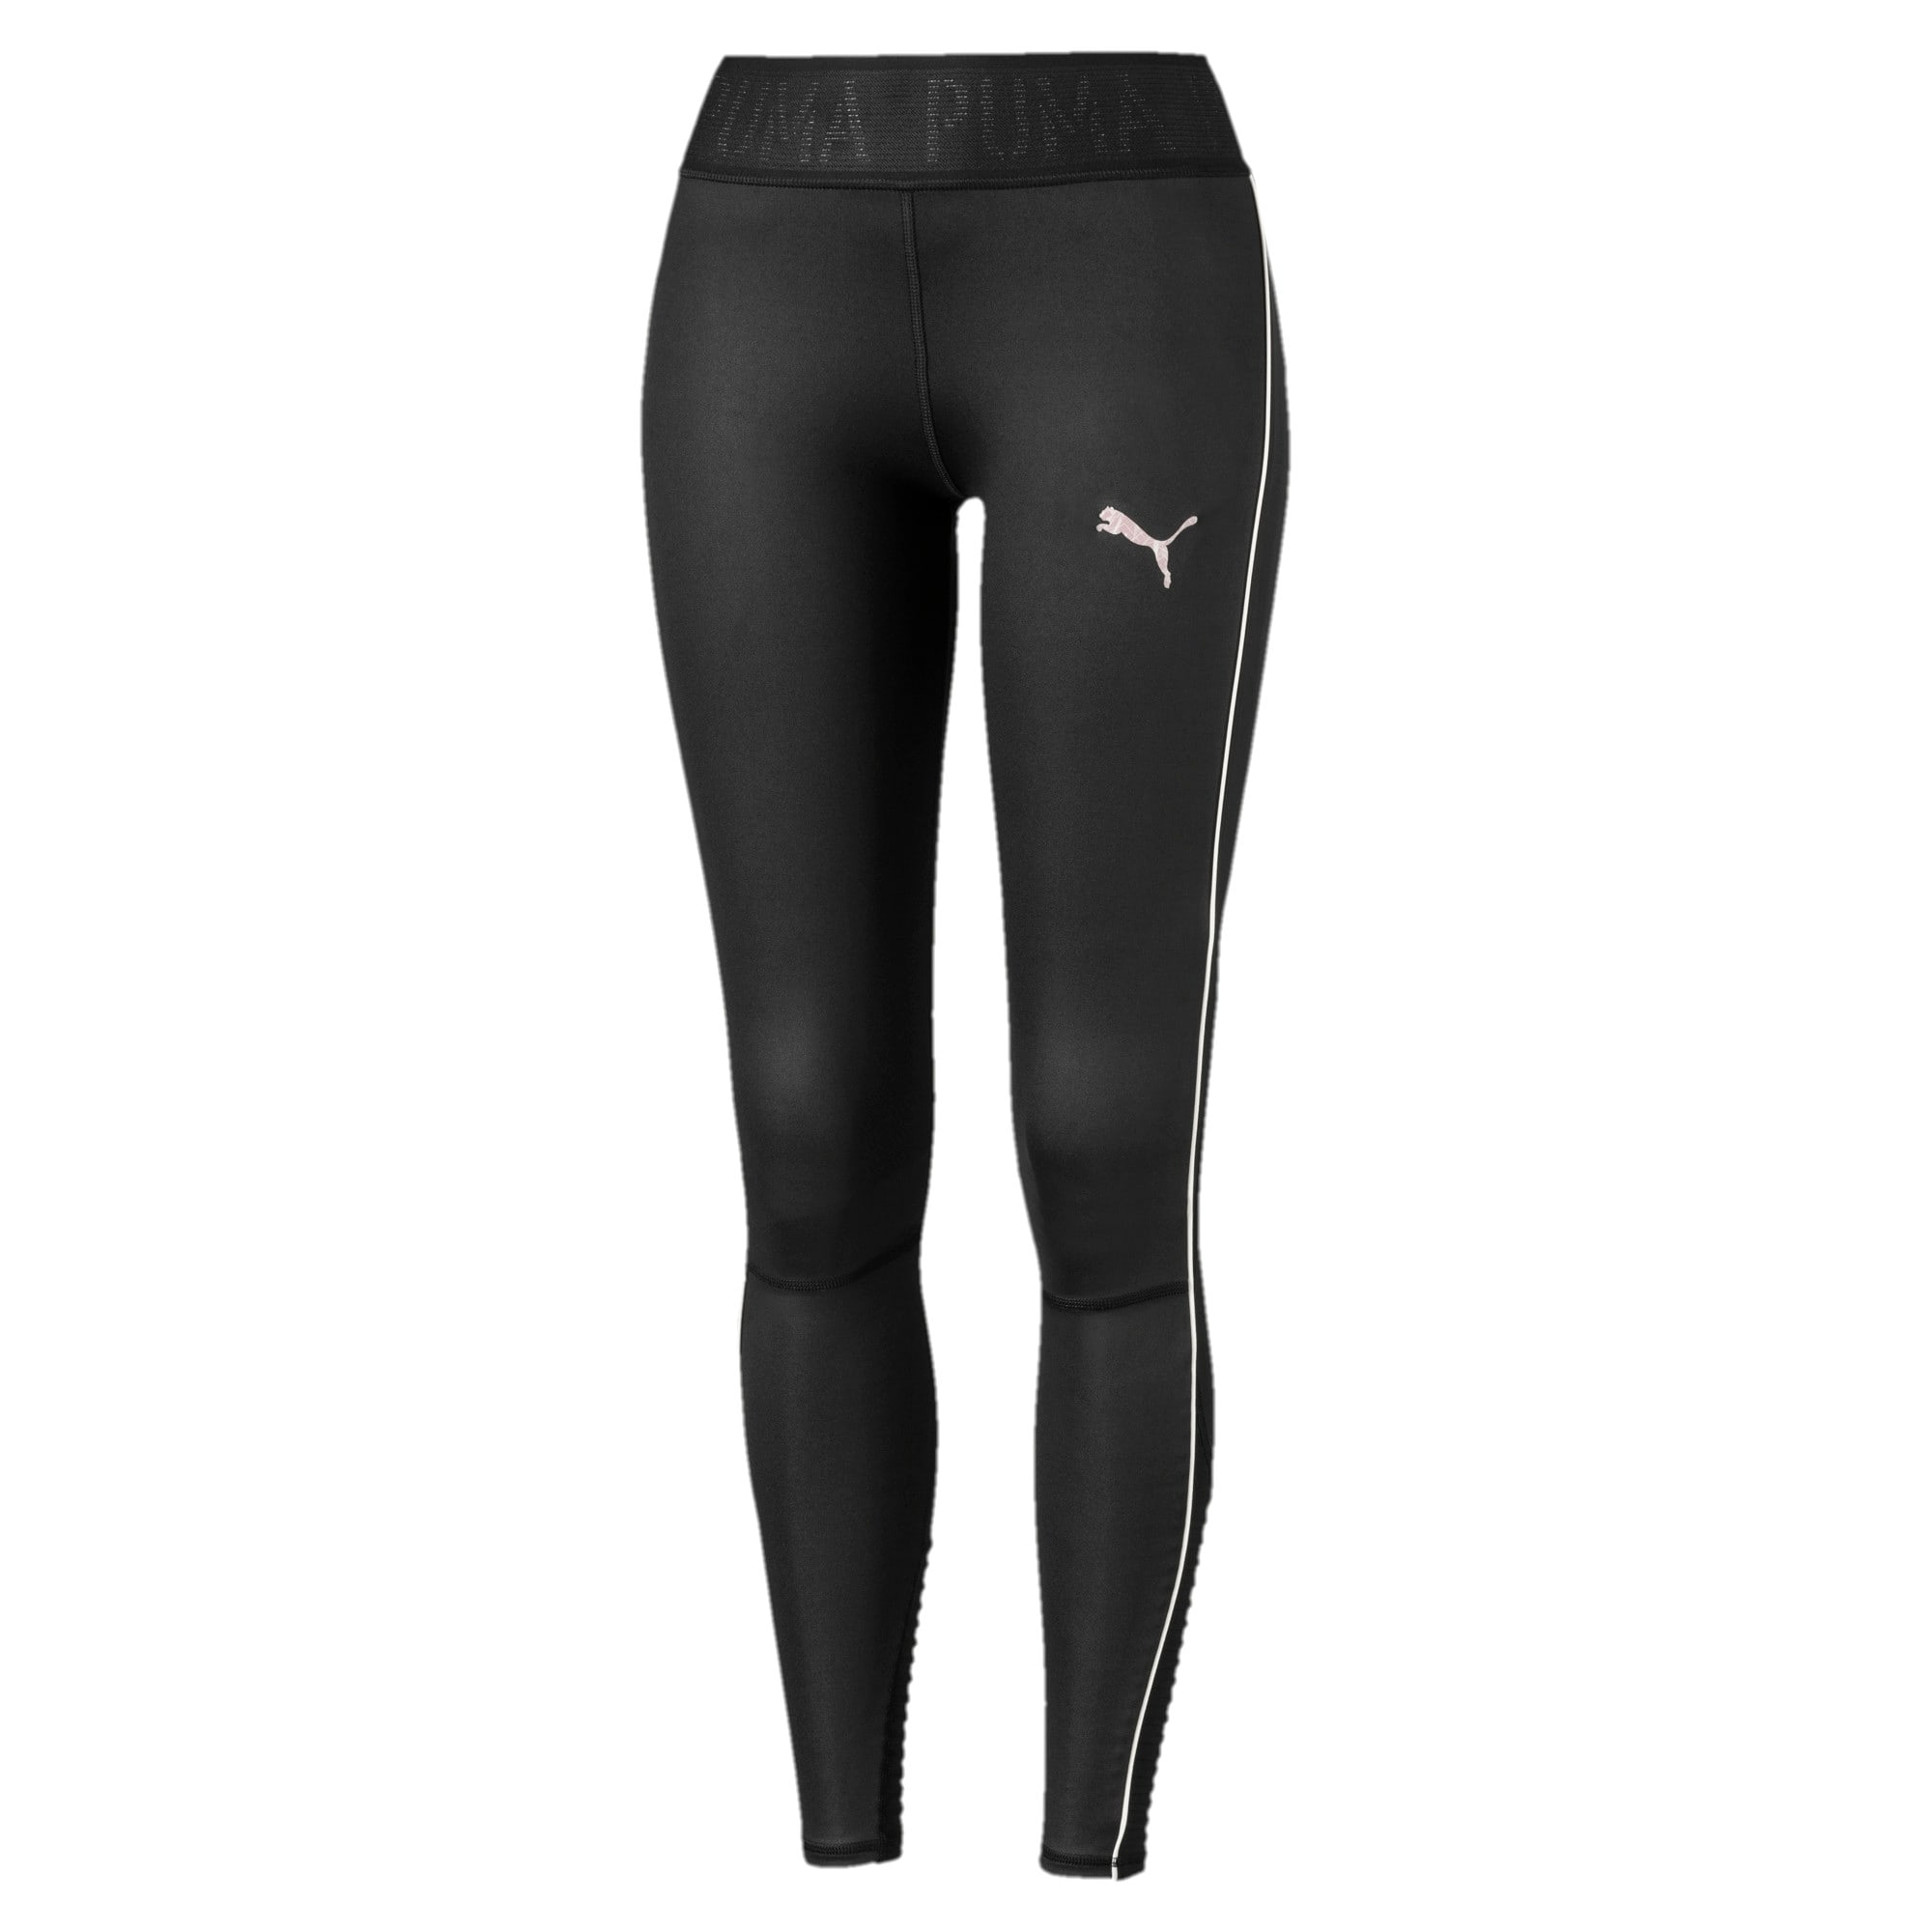 Thumbnail 4 of SHIFT Women's Training Leggings, Puma Black, medium